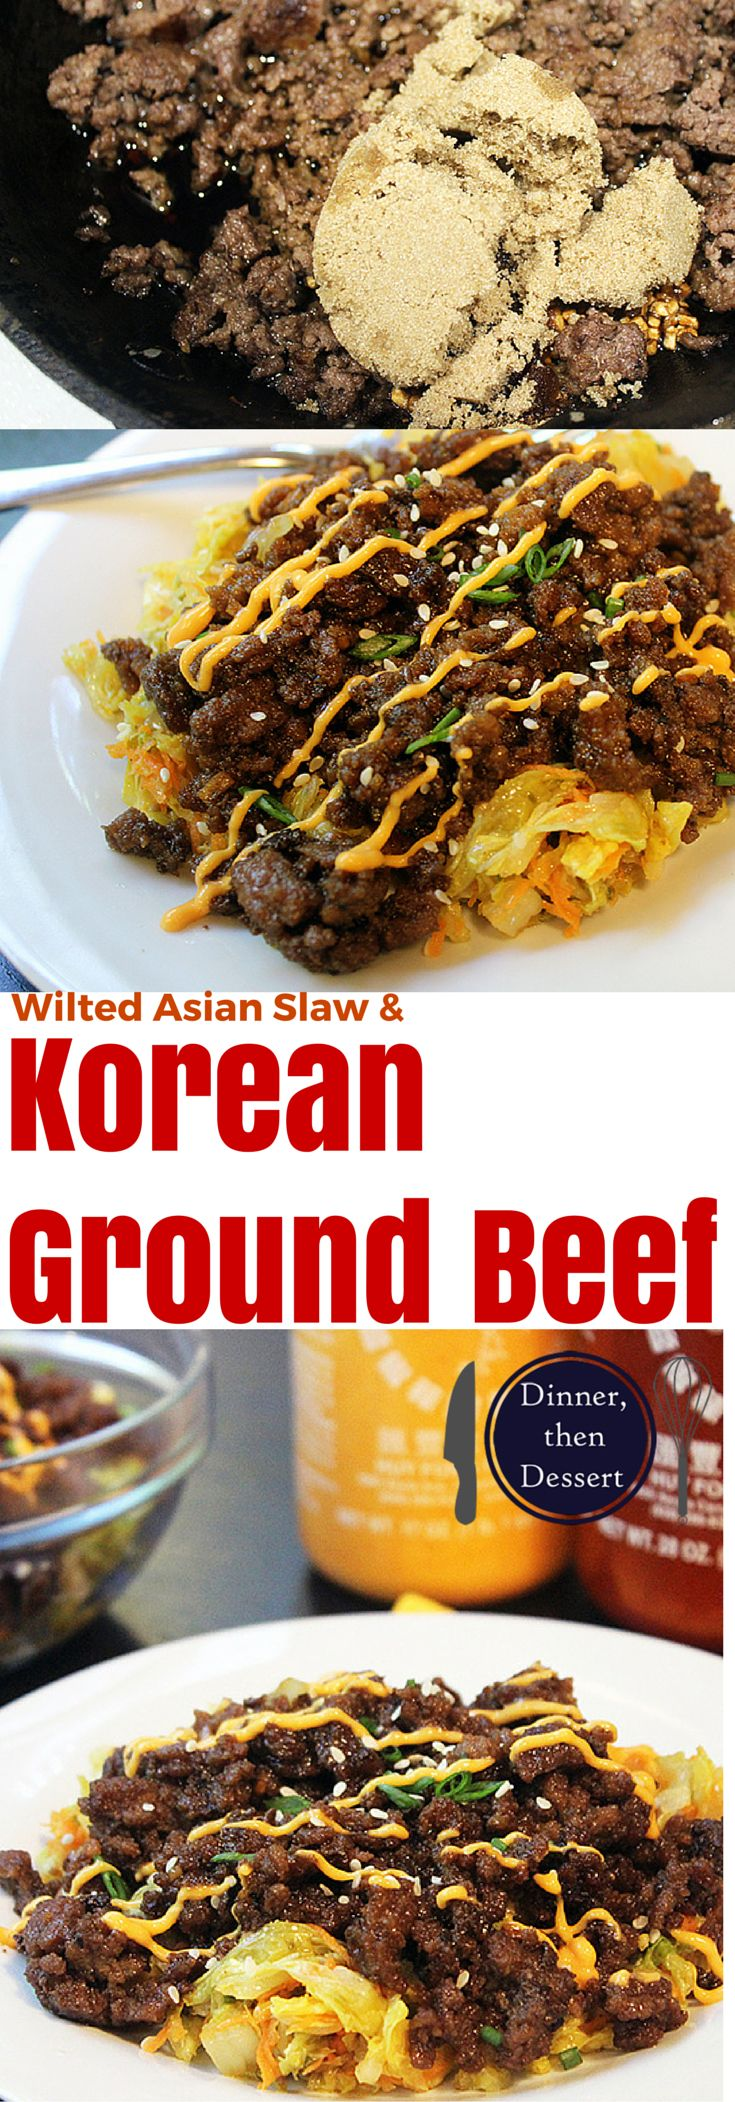 Korean Ground Beef Over Wilted Sesame Soy Napa Cabbage Slaw Beef Dinner Korean Ground Beef Napa Cabbage Recipes